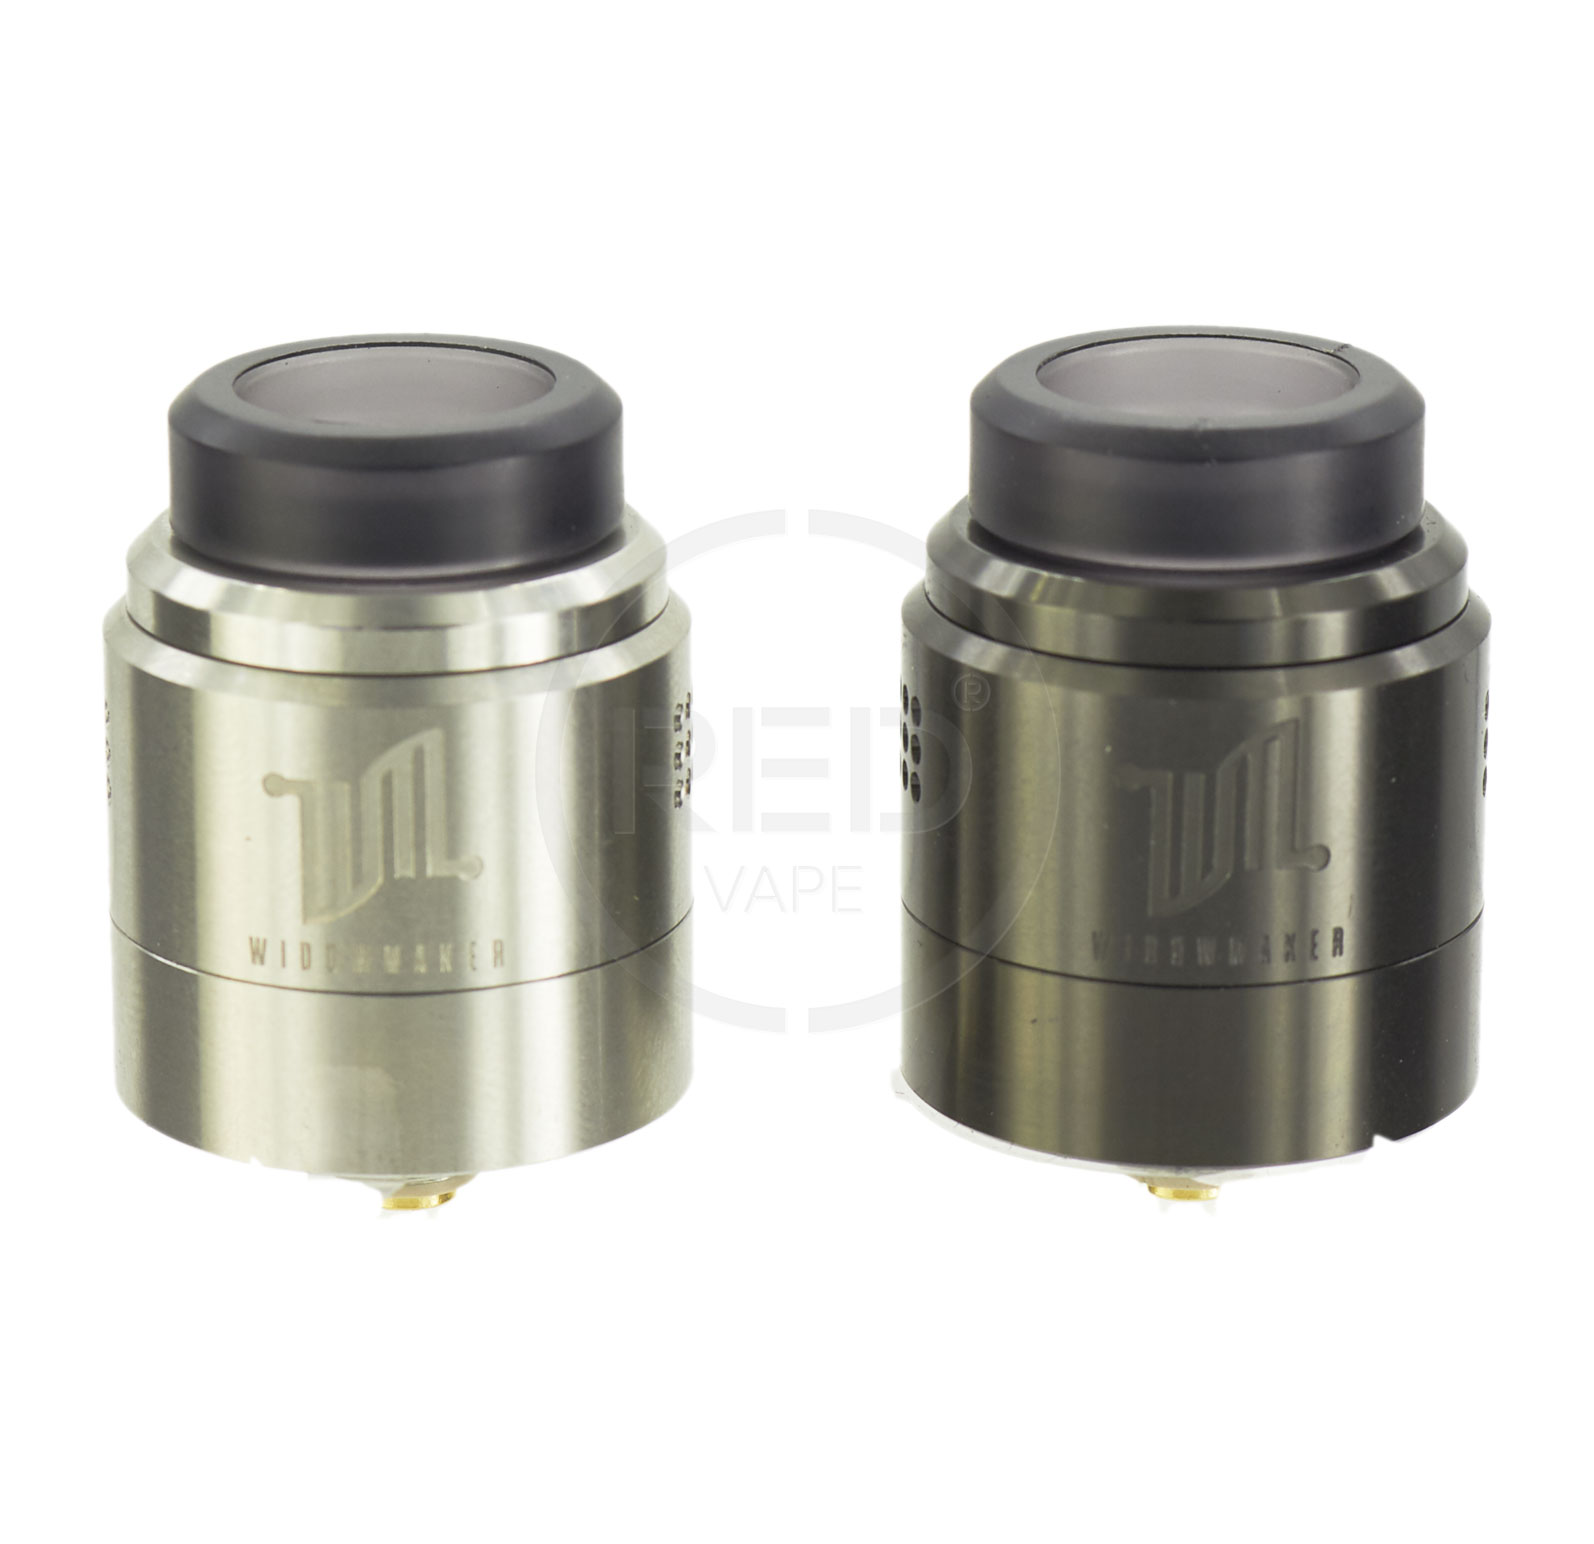 Дрипка Vandy Vape Widowmaker RDA | REDVAPE.RU